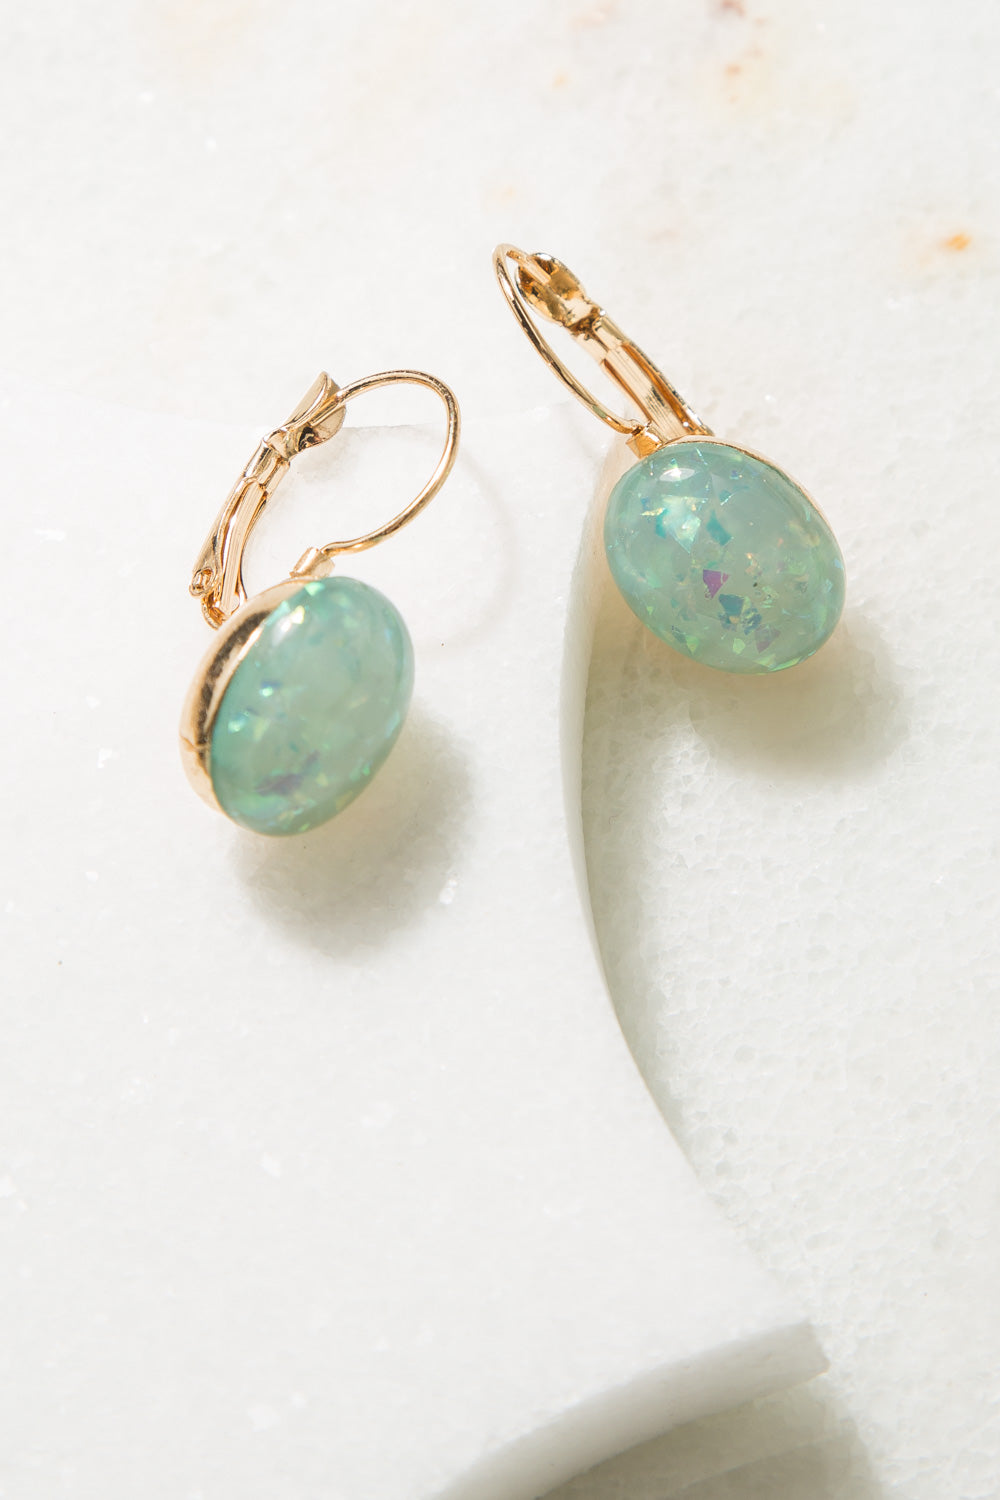 Type 1 Opal Here Earrings